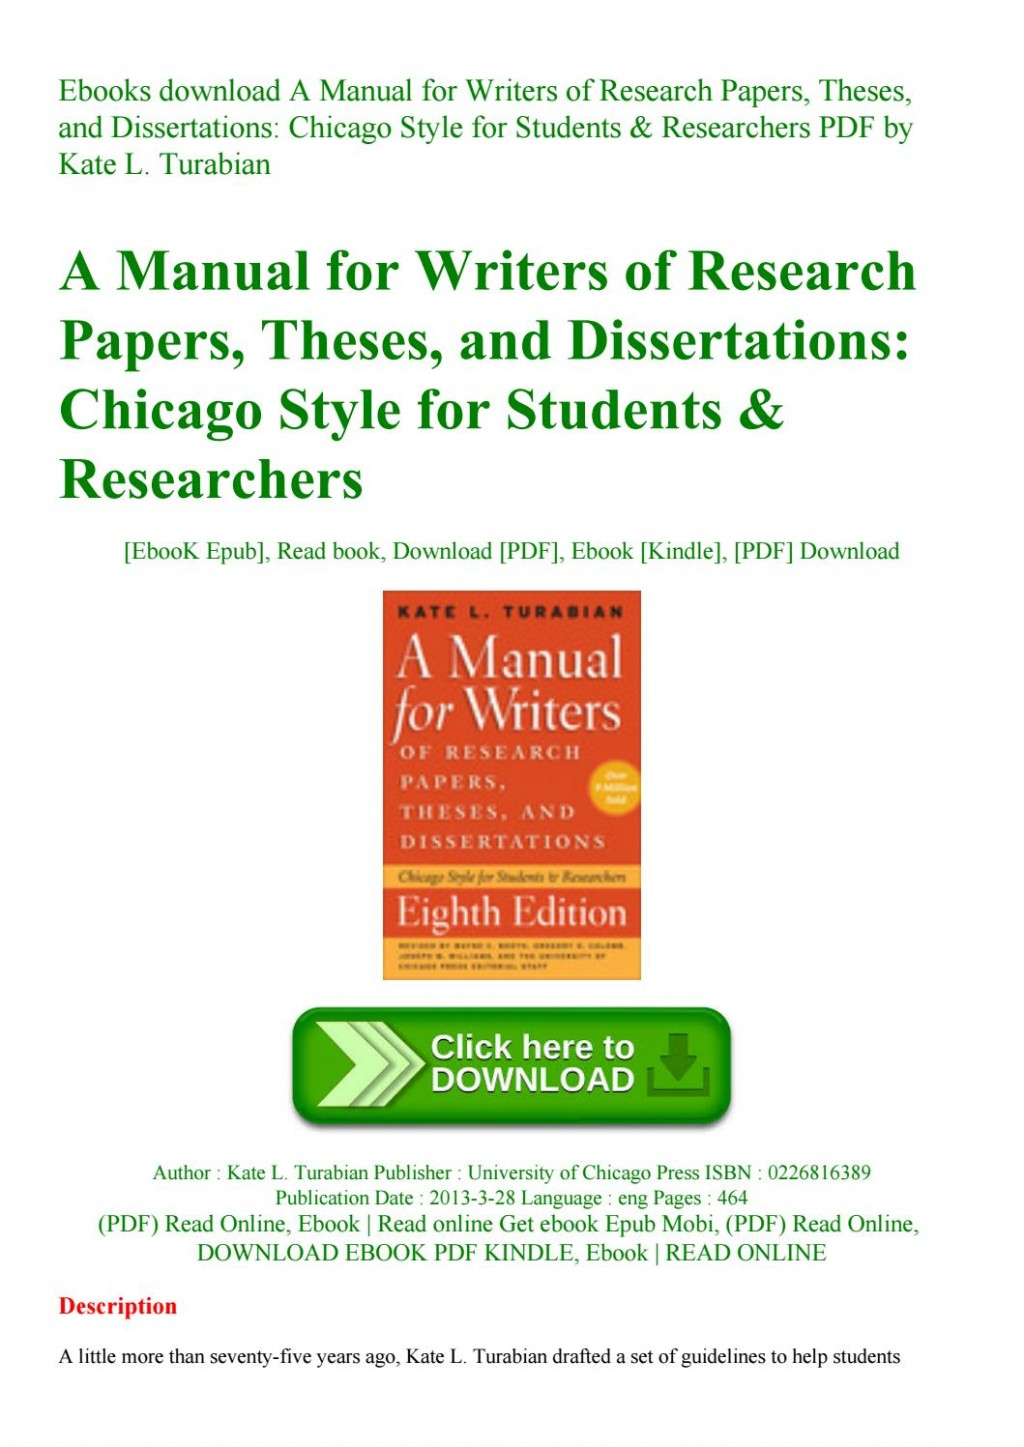 002 Manual For Writers Of Researchs Theses And Dissertations Pdf Download Page 1 Impressive A Research Papers Large